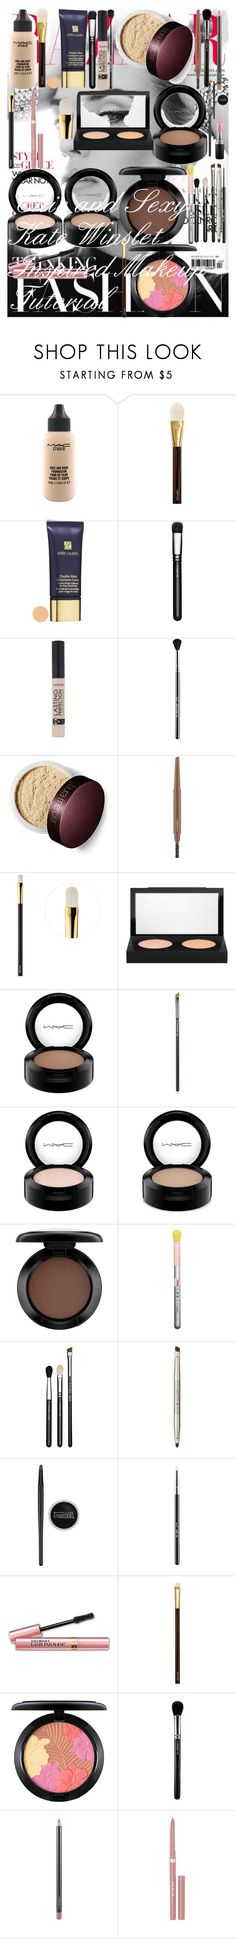 """Chic and Sexy Kate Winslet Inspired Makeup Tutorial"" by oroartye-1 on Polyvore featuring beauty, MAC Cosmetics, Tom Ford, Estée Lauder, Sigma, Ilia, Maybelline, L'Oréal Paris and Stila"